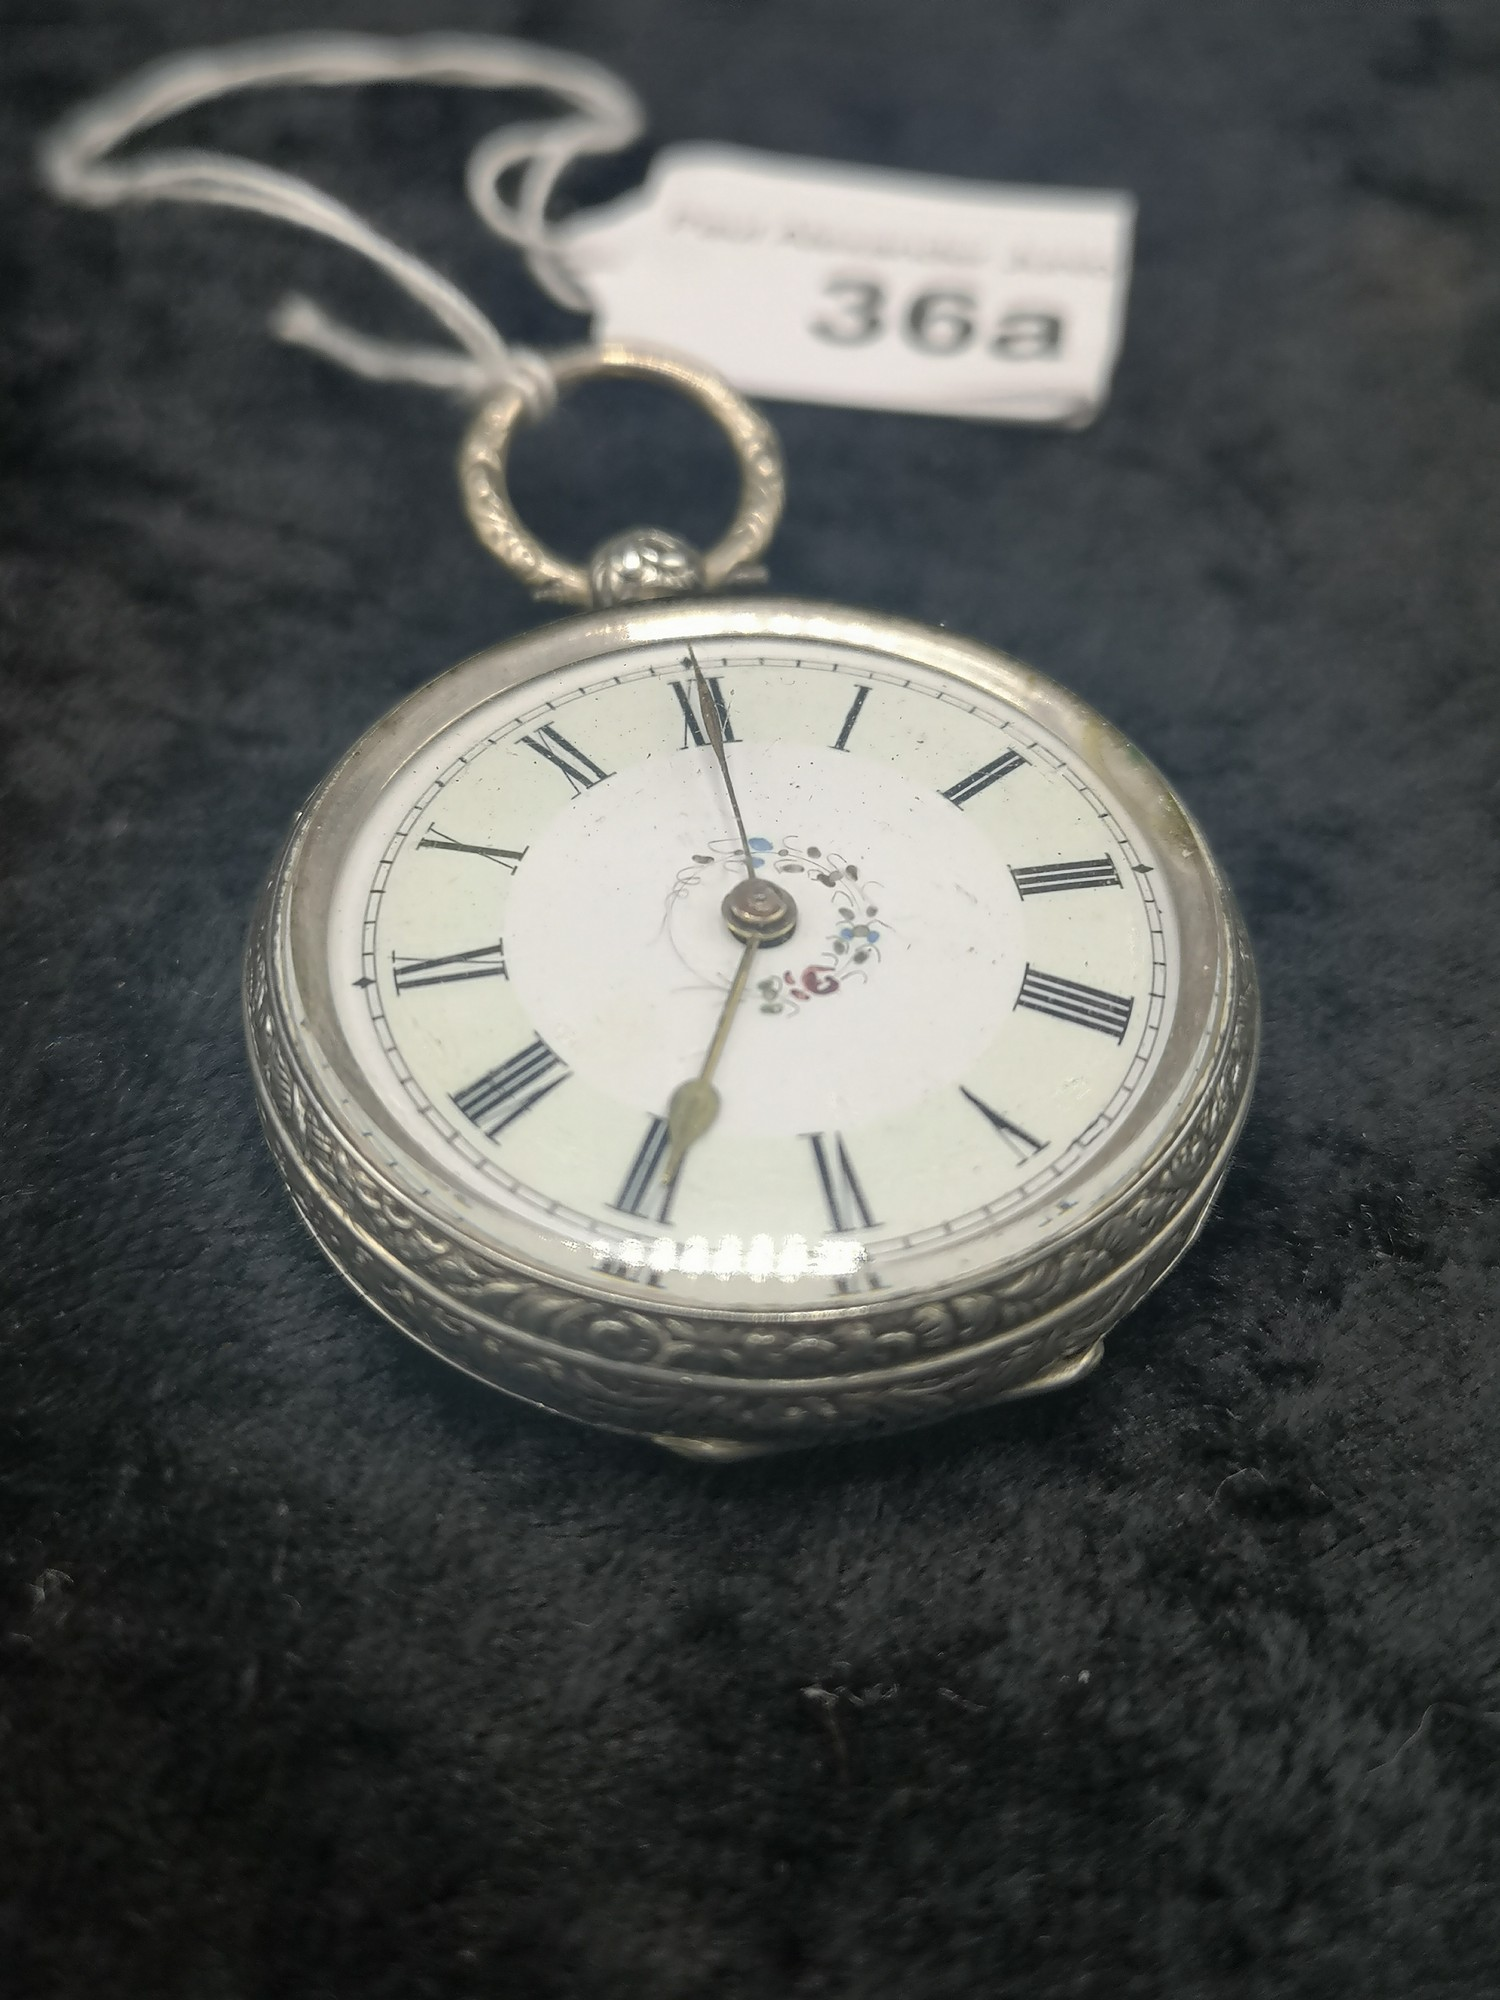 Ladies Silver Pocket Watch With Enamel Face With Floral Centre Decoration - Image 2 of 2